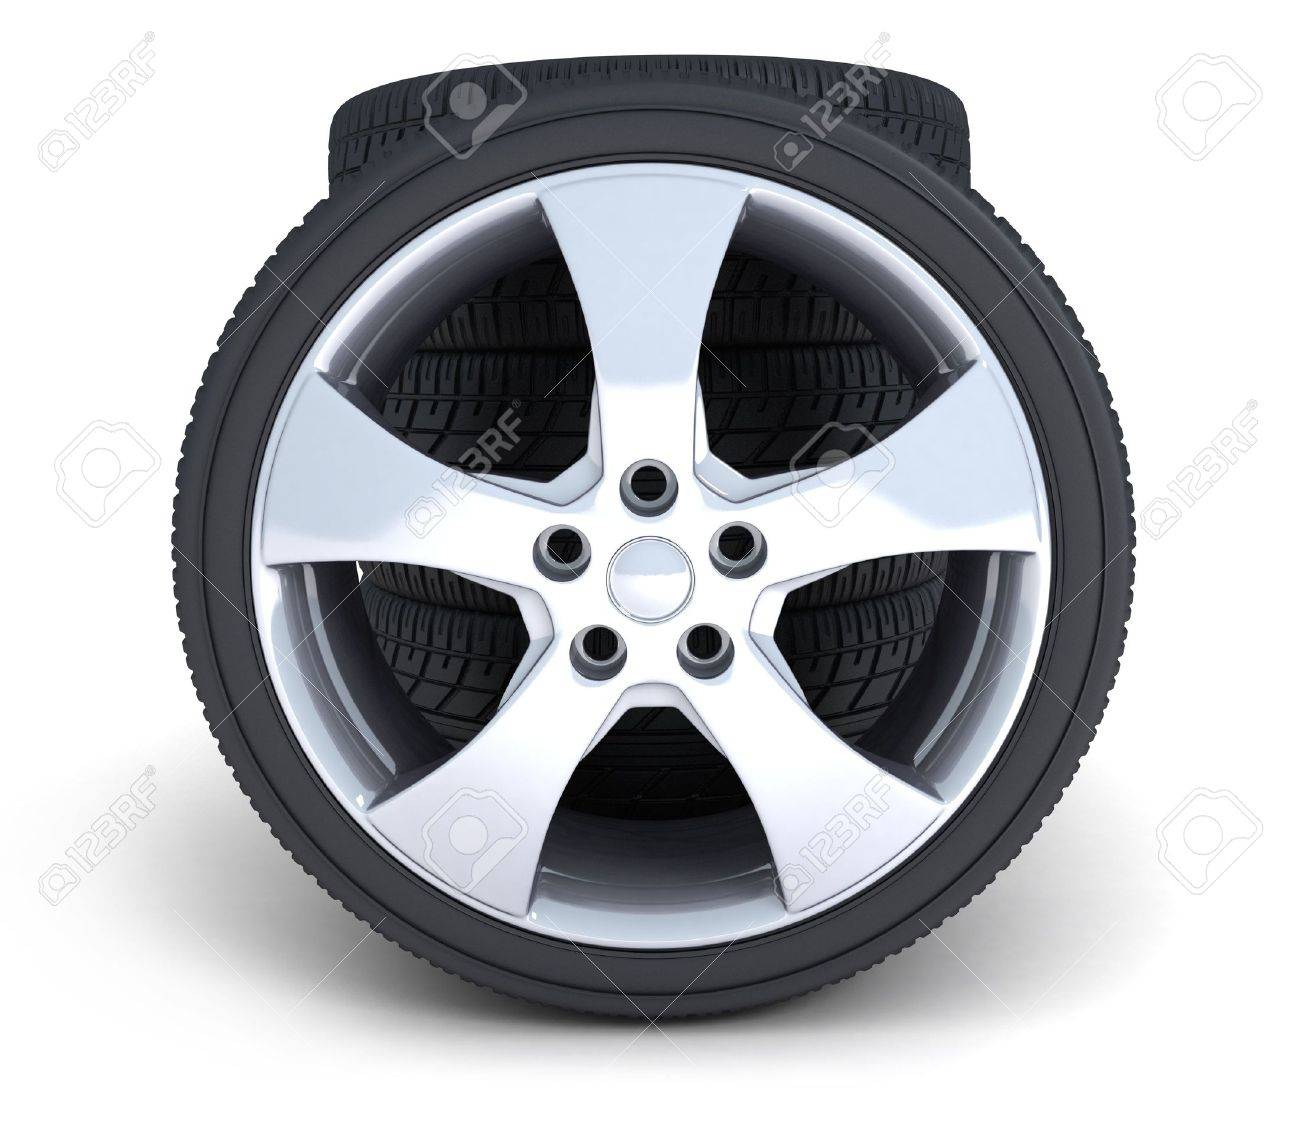 four motor car wheels on a white background Stock Photo - 5998450